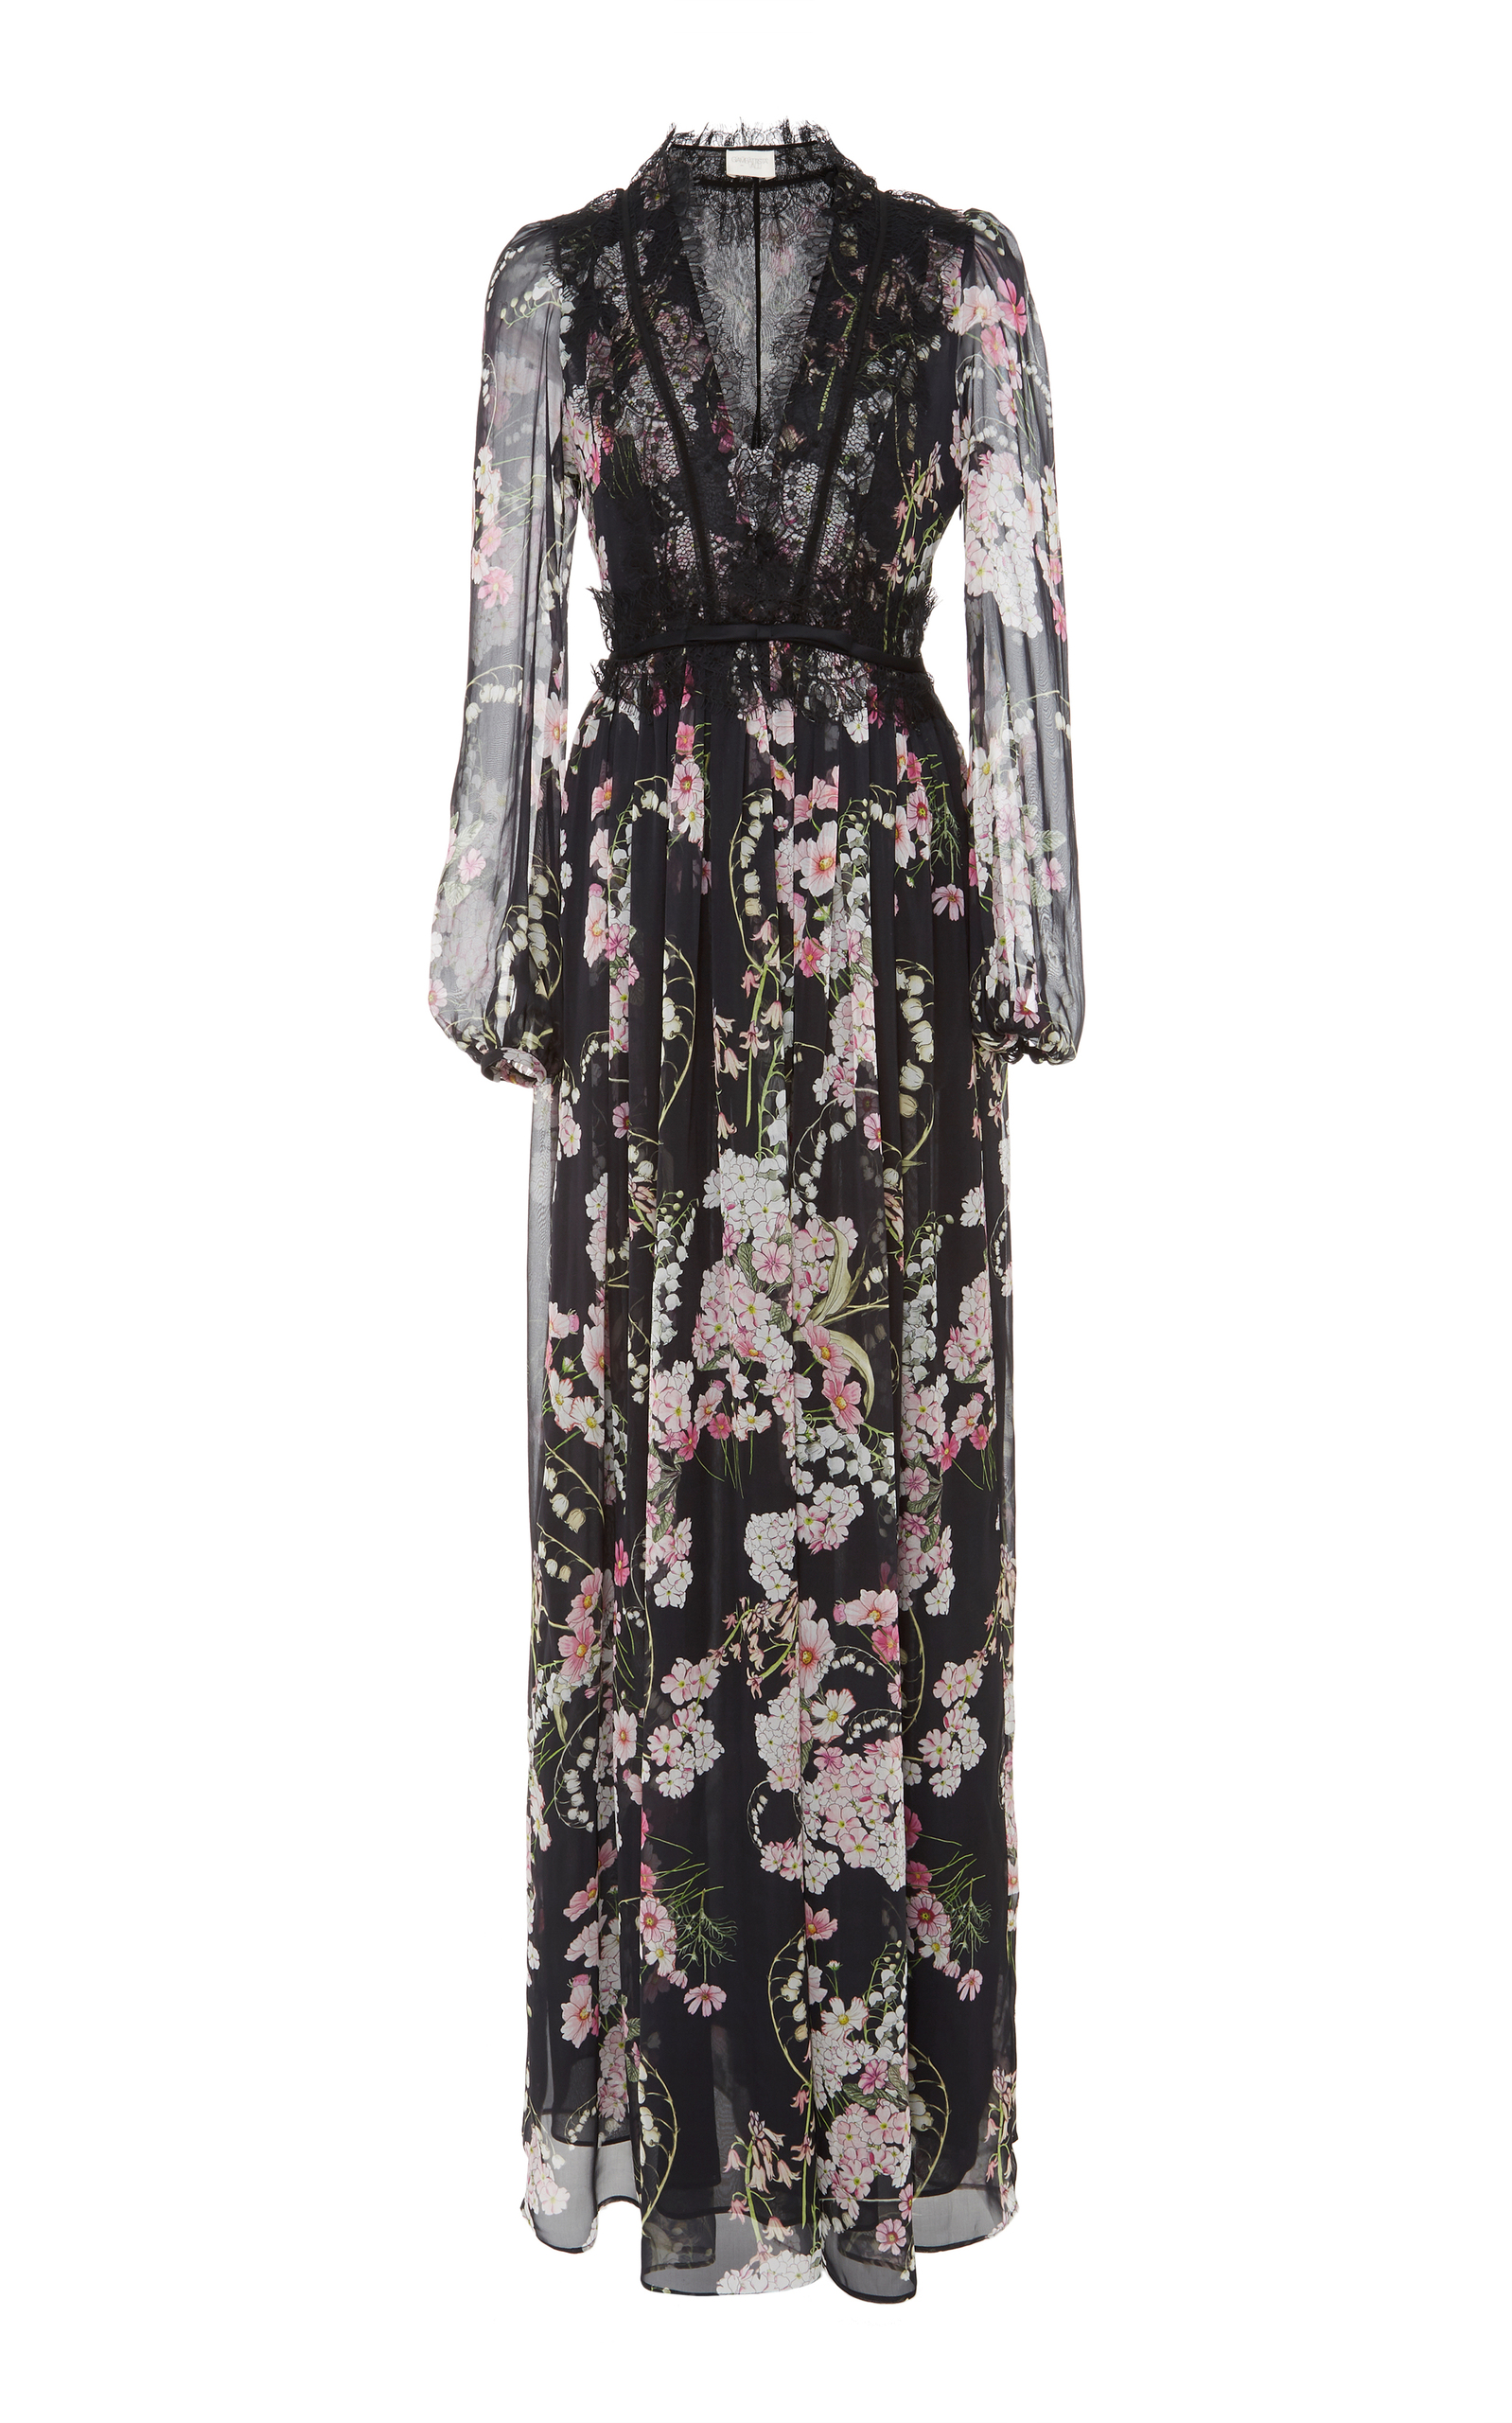 Cheap Sale Footlocker Finishline Lace-trimmed Floral-print Silk-chiffon Maxi Dress - Black Giambattista Valli Discounts Cheap Amazon Discount Footlocker Finishline Clearance Cheapest Price lxMuQiQZQs